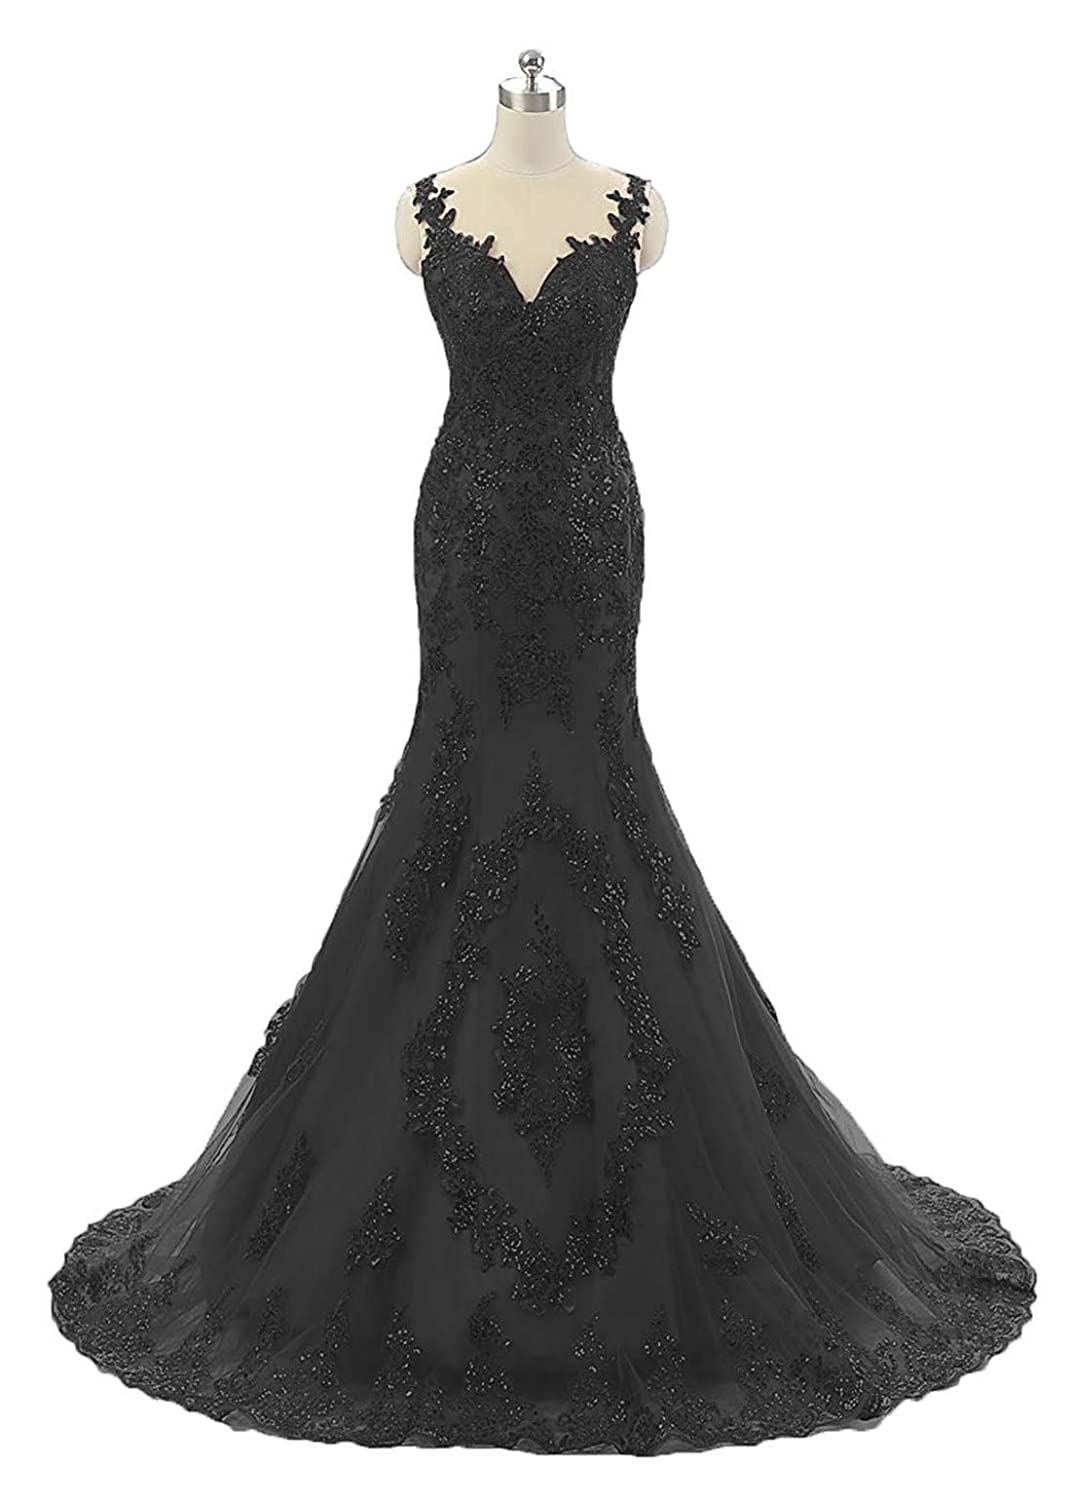 Black Sexy Sequin Mermaid Prom Dresses Long Lace Backless Spaghetti Strap Womens Pageant Evening Party Gown